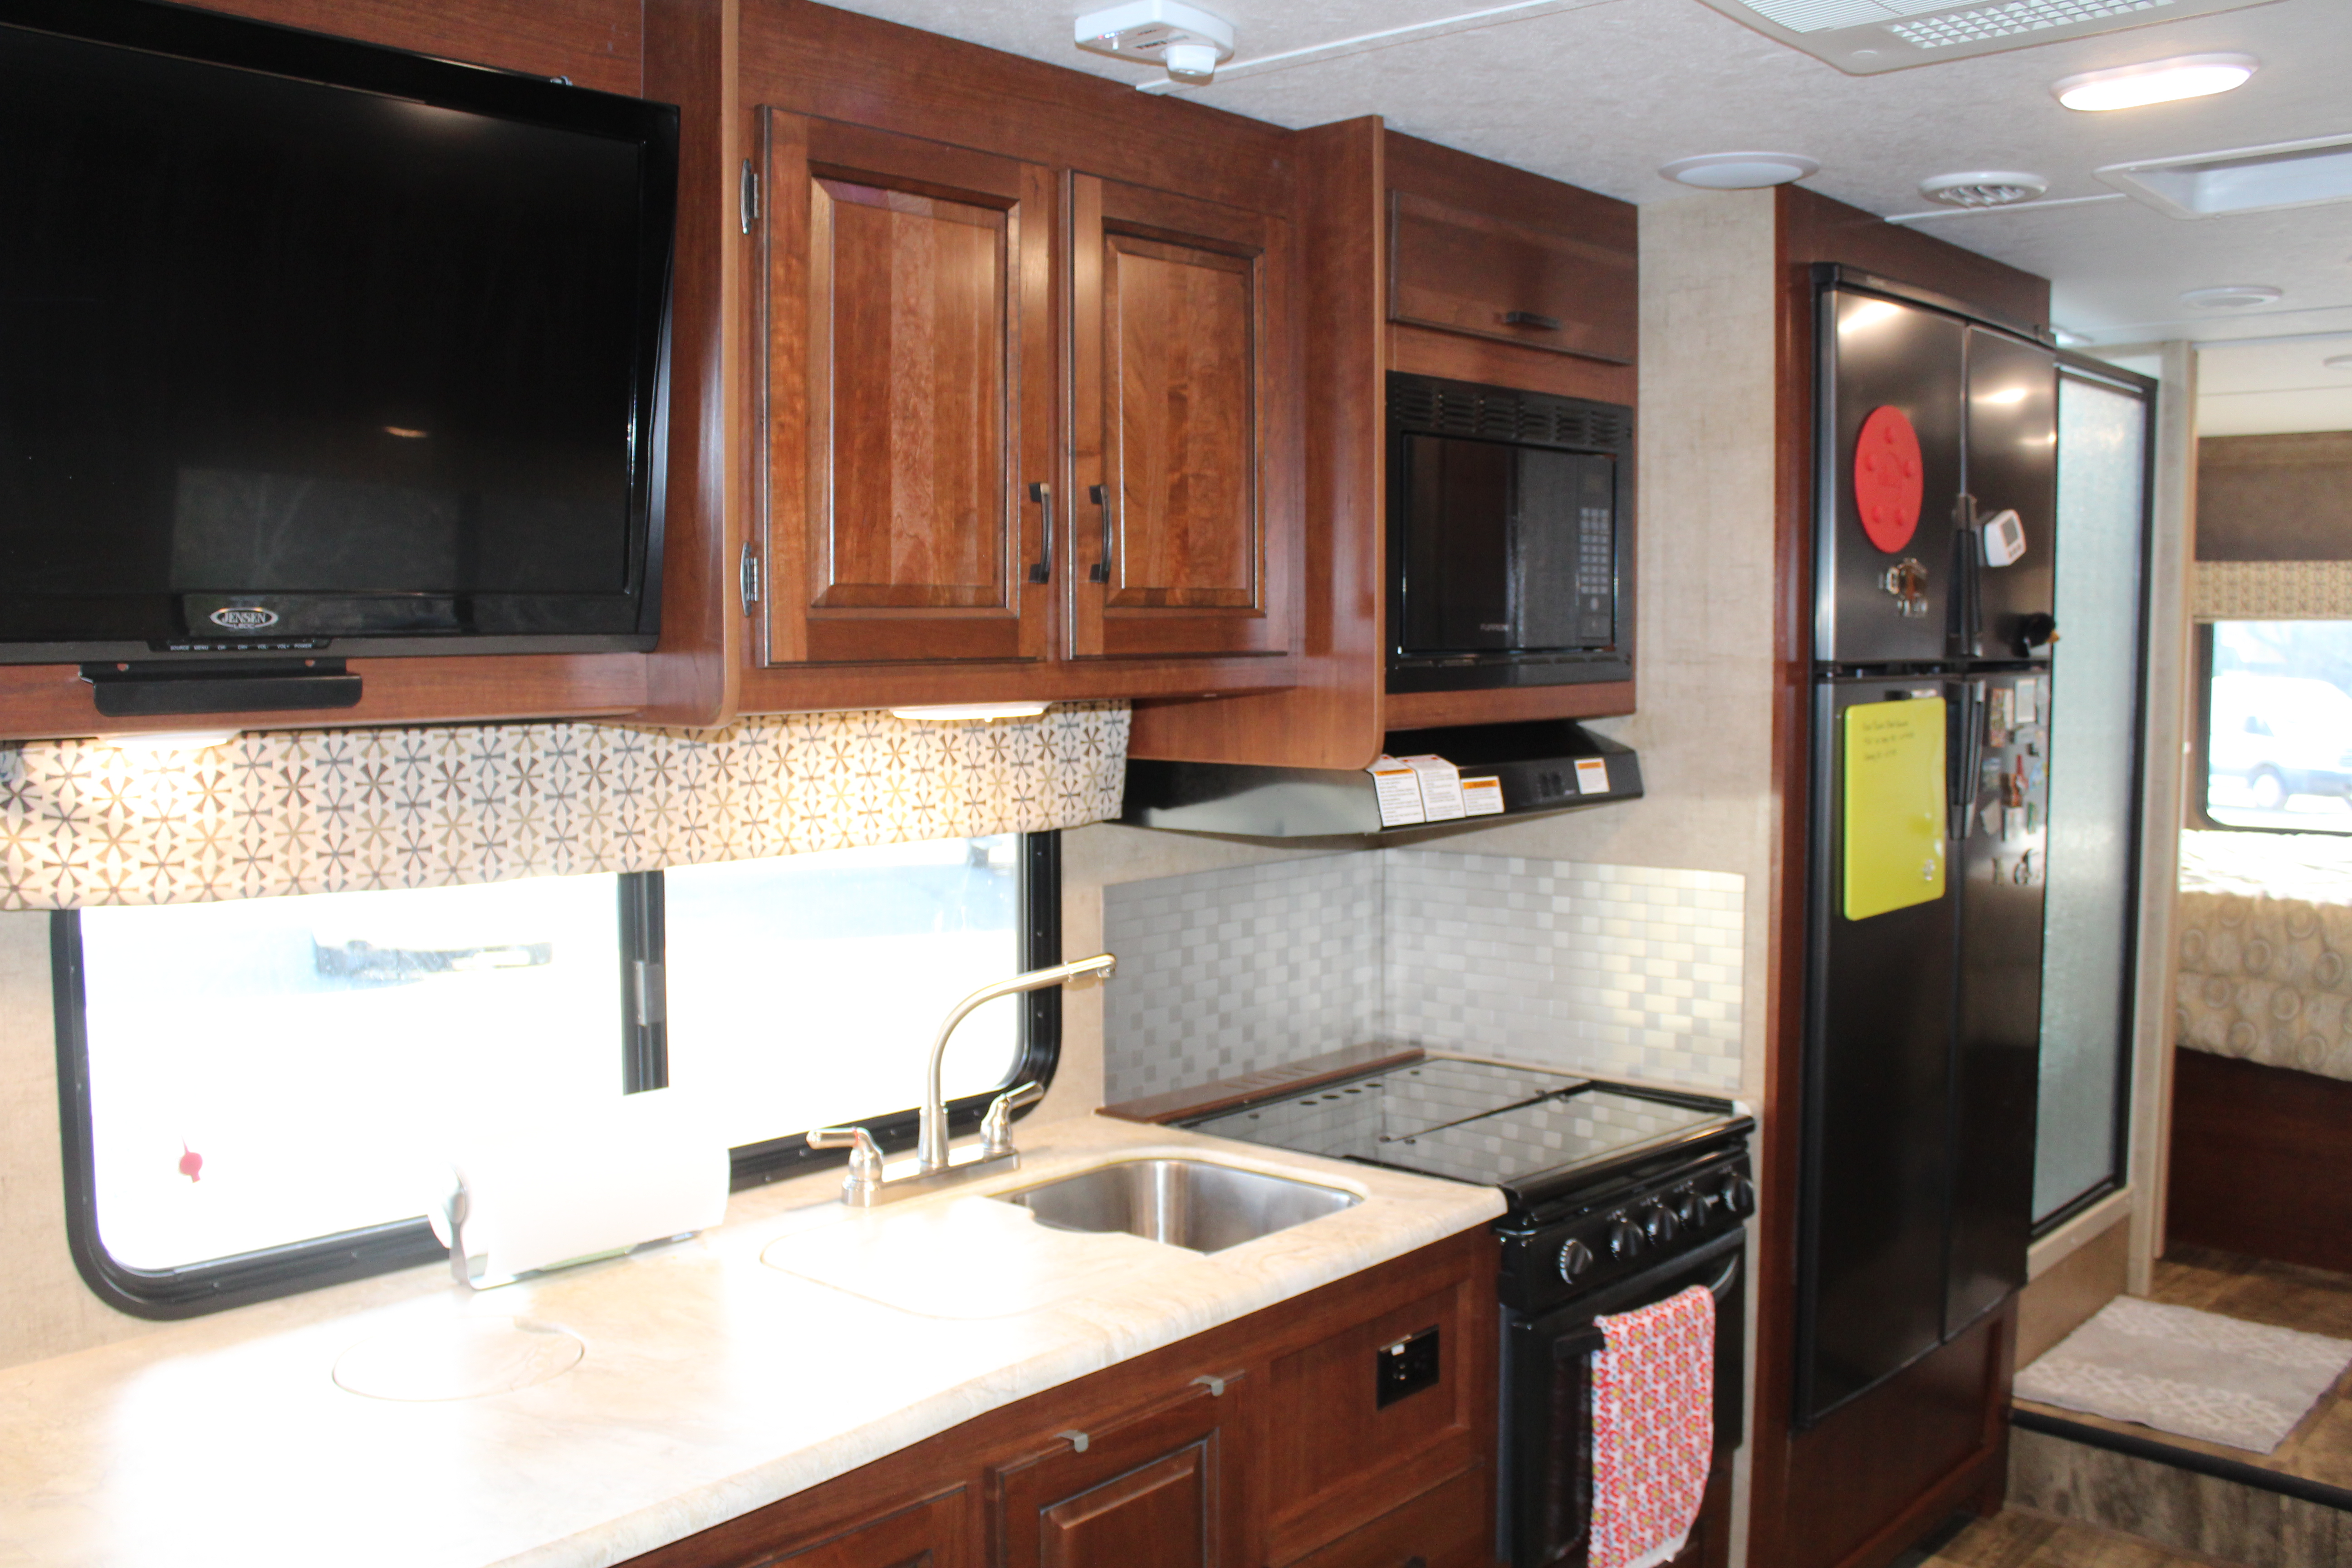 3 burner gas range with hood, microwave, and gas oven.  TV with DVD player and surround sound.. Forest River Sunseeker 2017